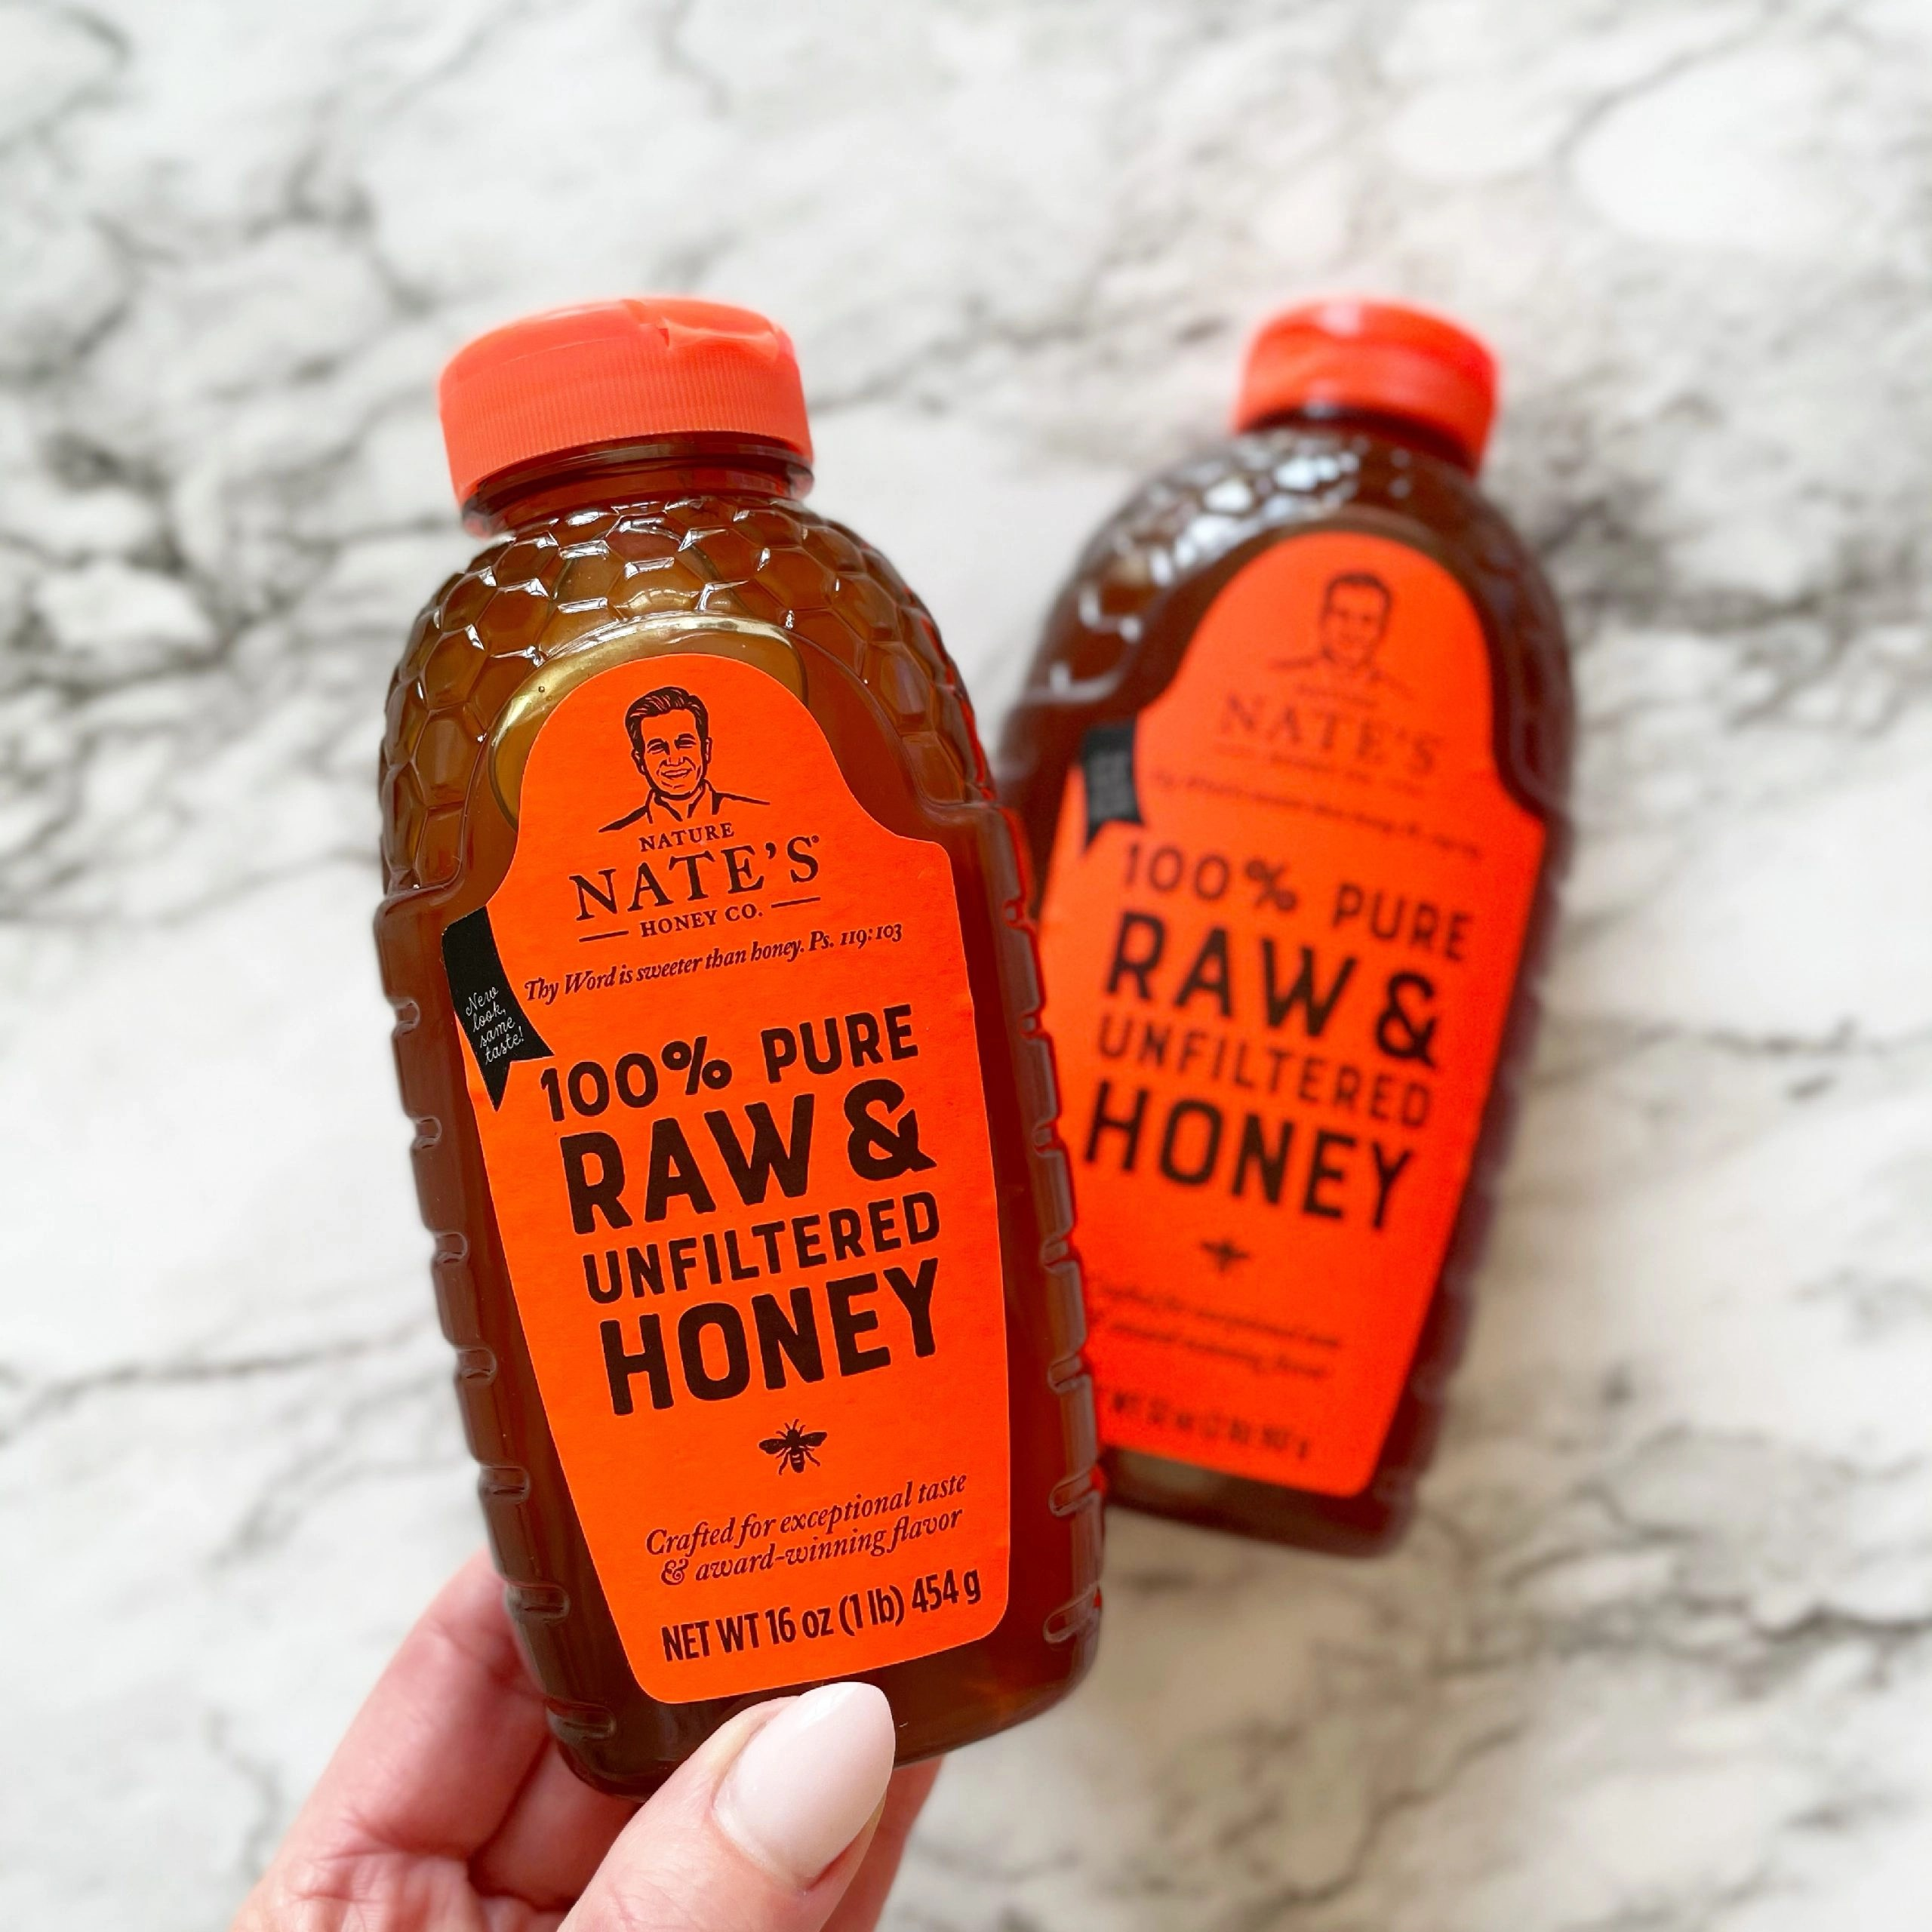 Nature Nate's Honey Co. raw & unfiltered honey